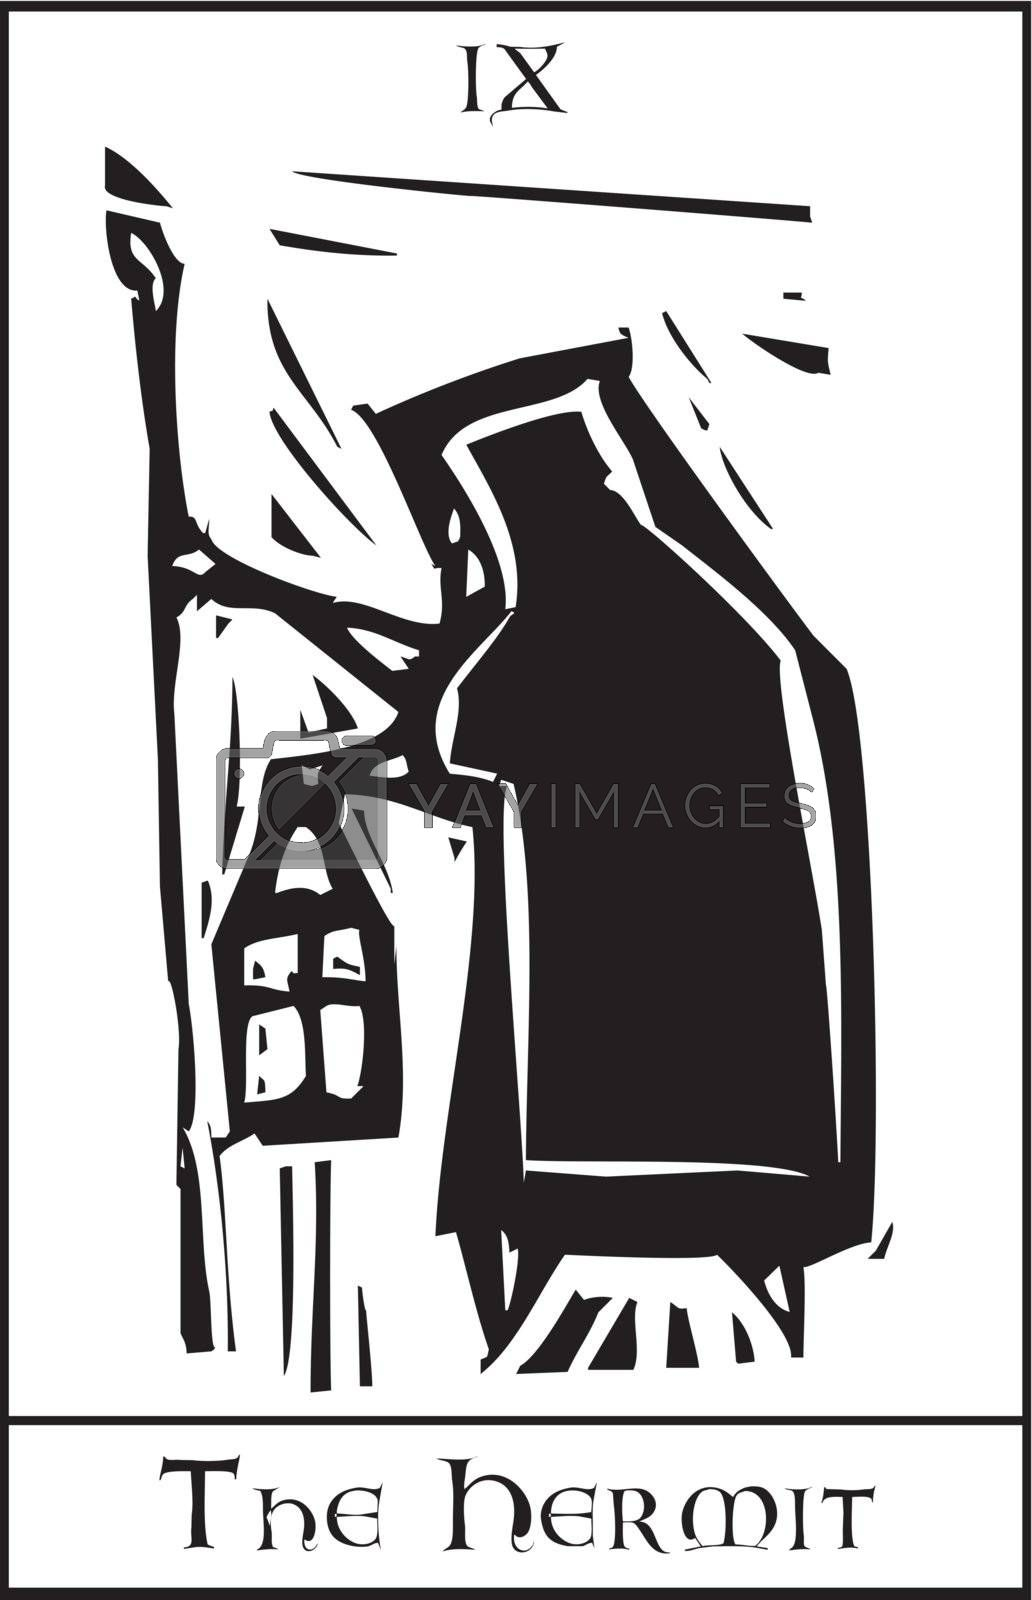 Woodcut expressionist style Tarot card image of the Hermit